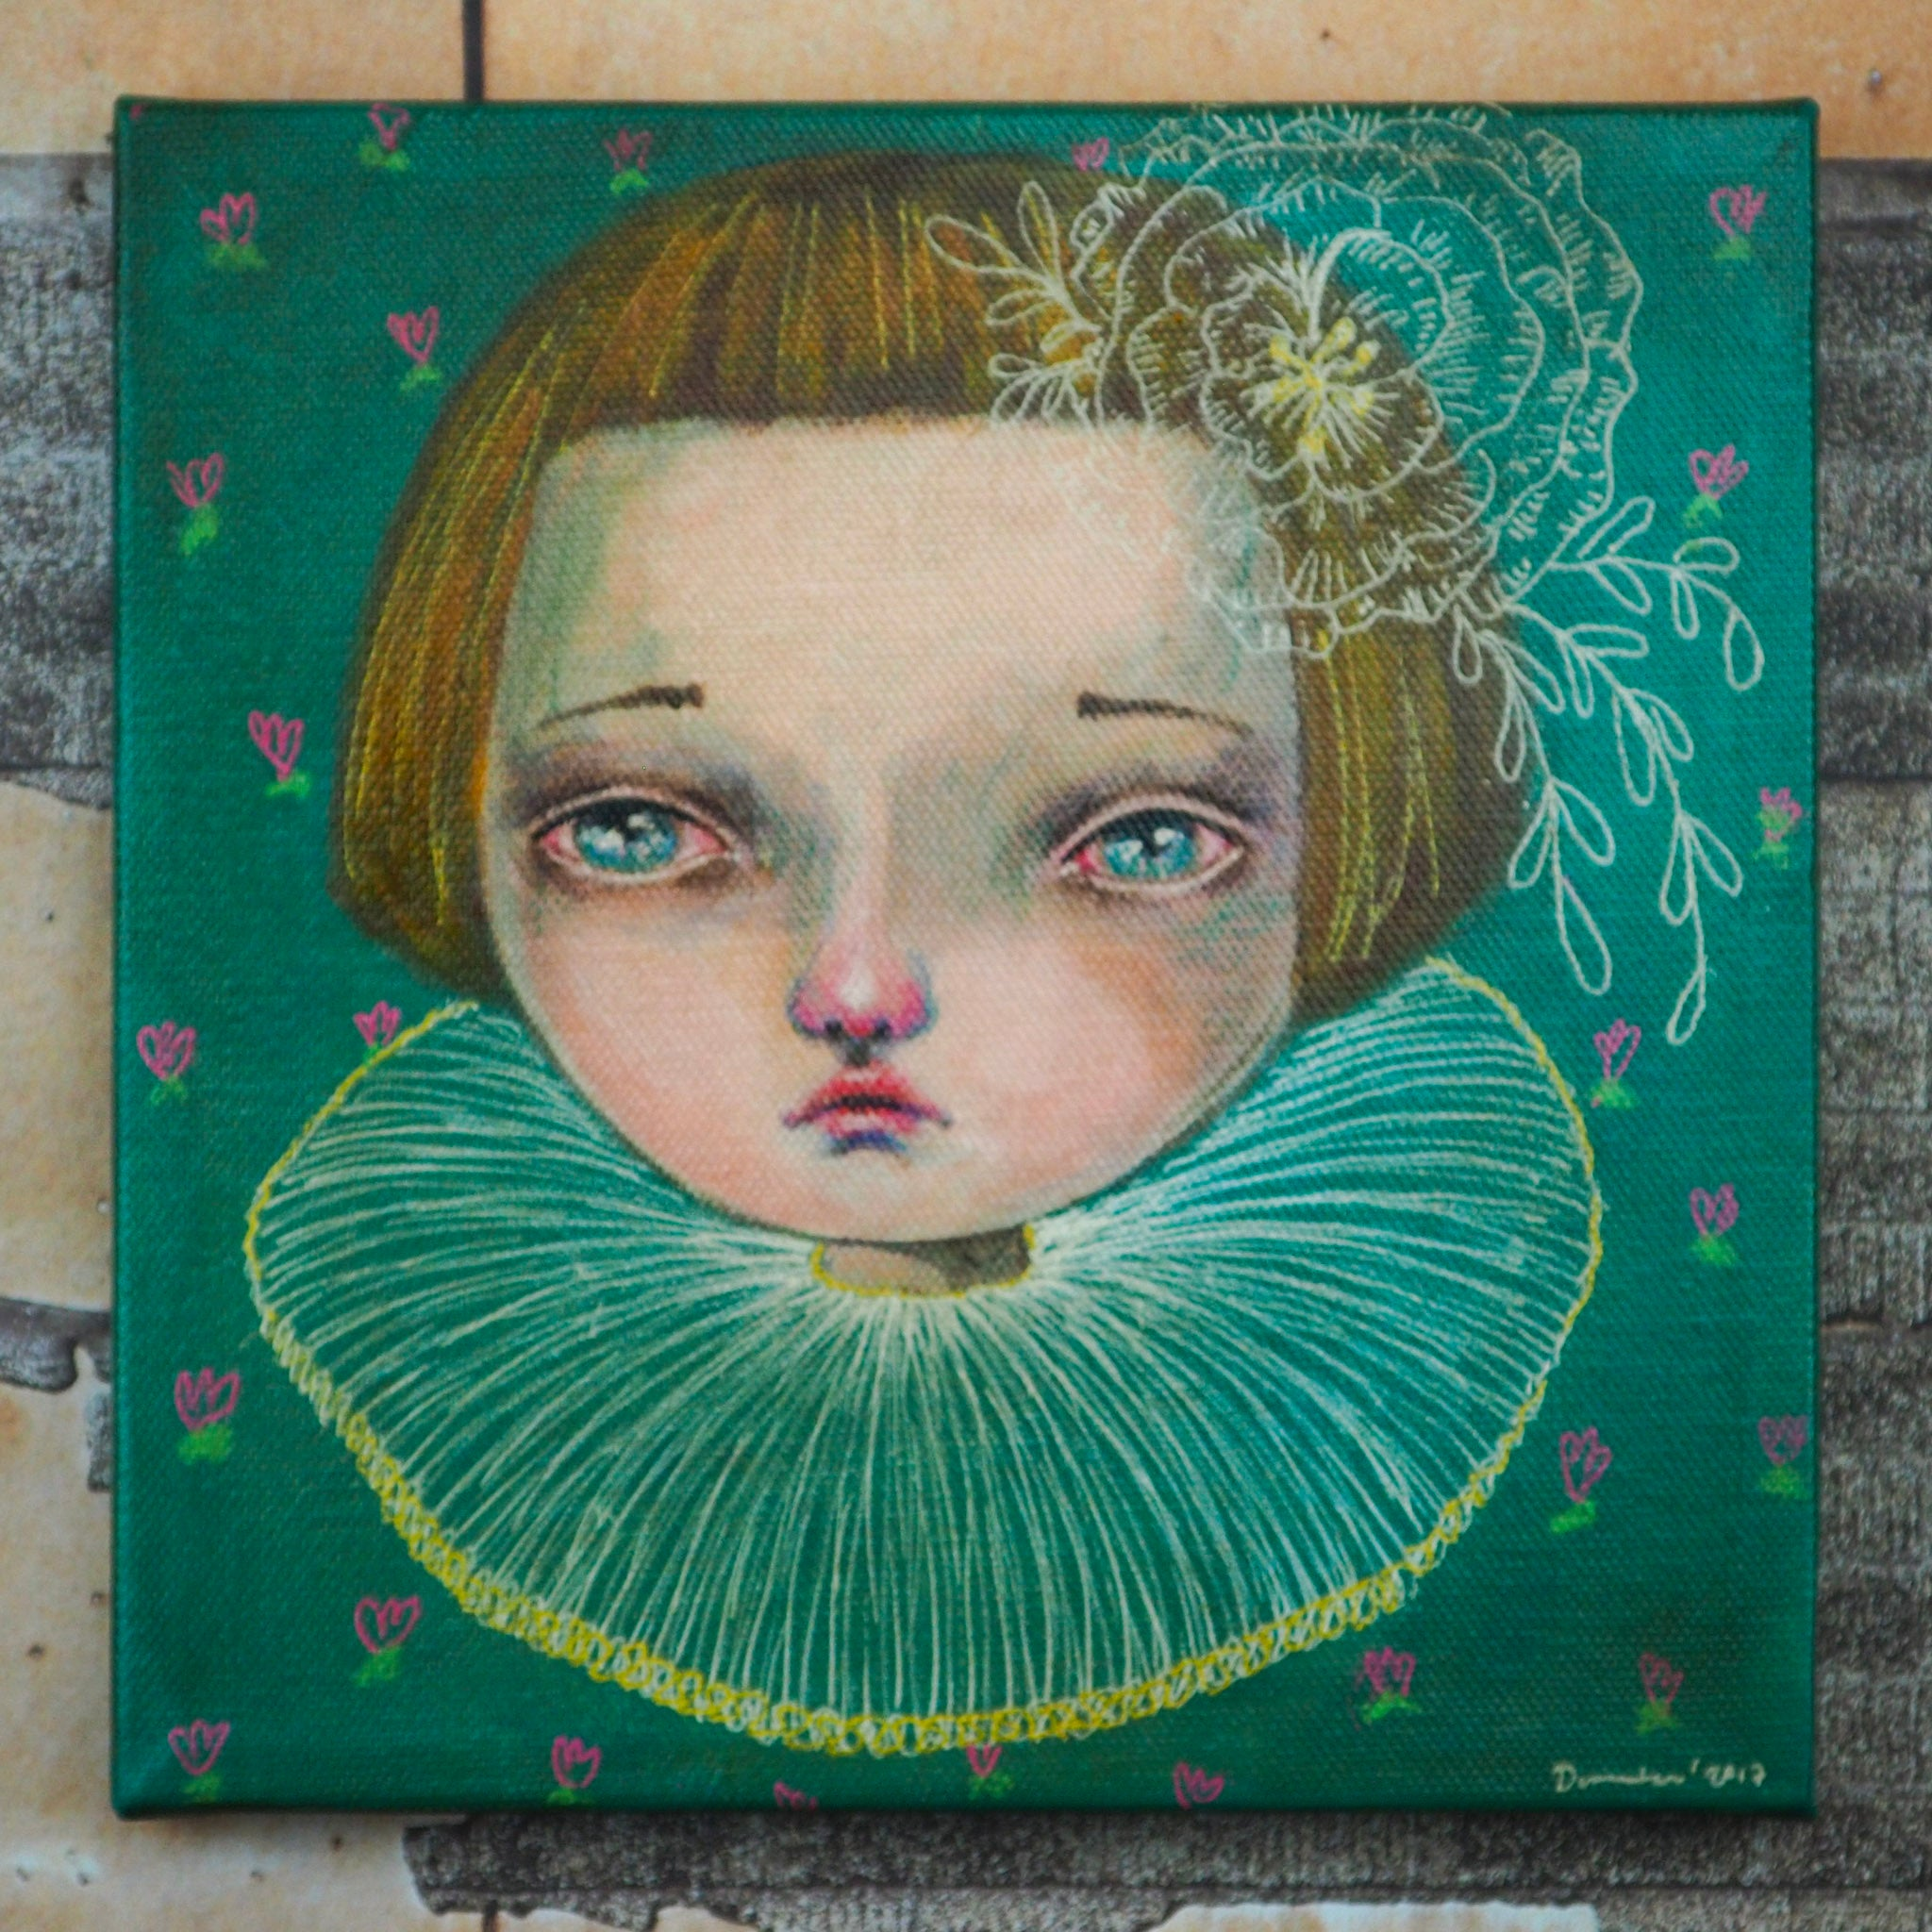 Original mixed media painting artwork by Danita. Surreal pop mixed with folk art green eyed girl on teal background portrait. Great home decor with a vintage shabby, worn out and whimsical folk art look.